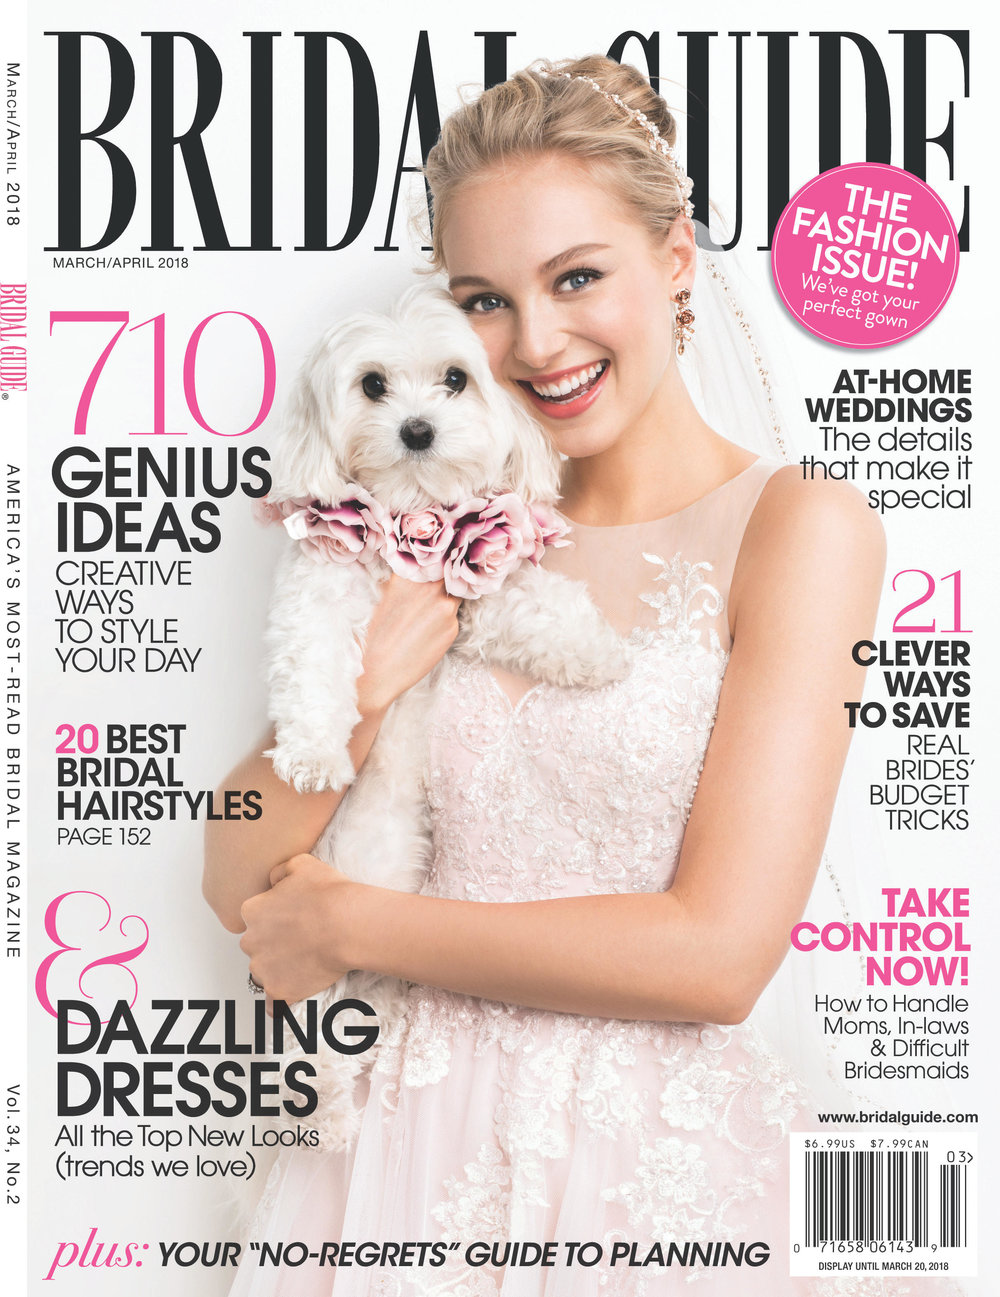 the9thmuse-BridalGuide-Cover.jpg